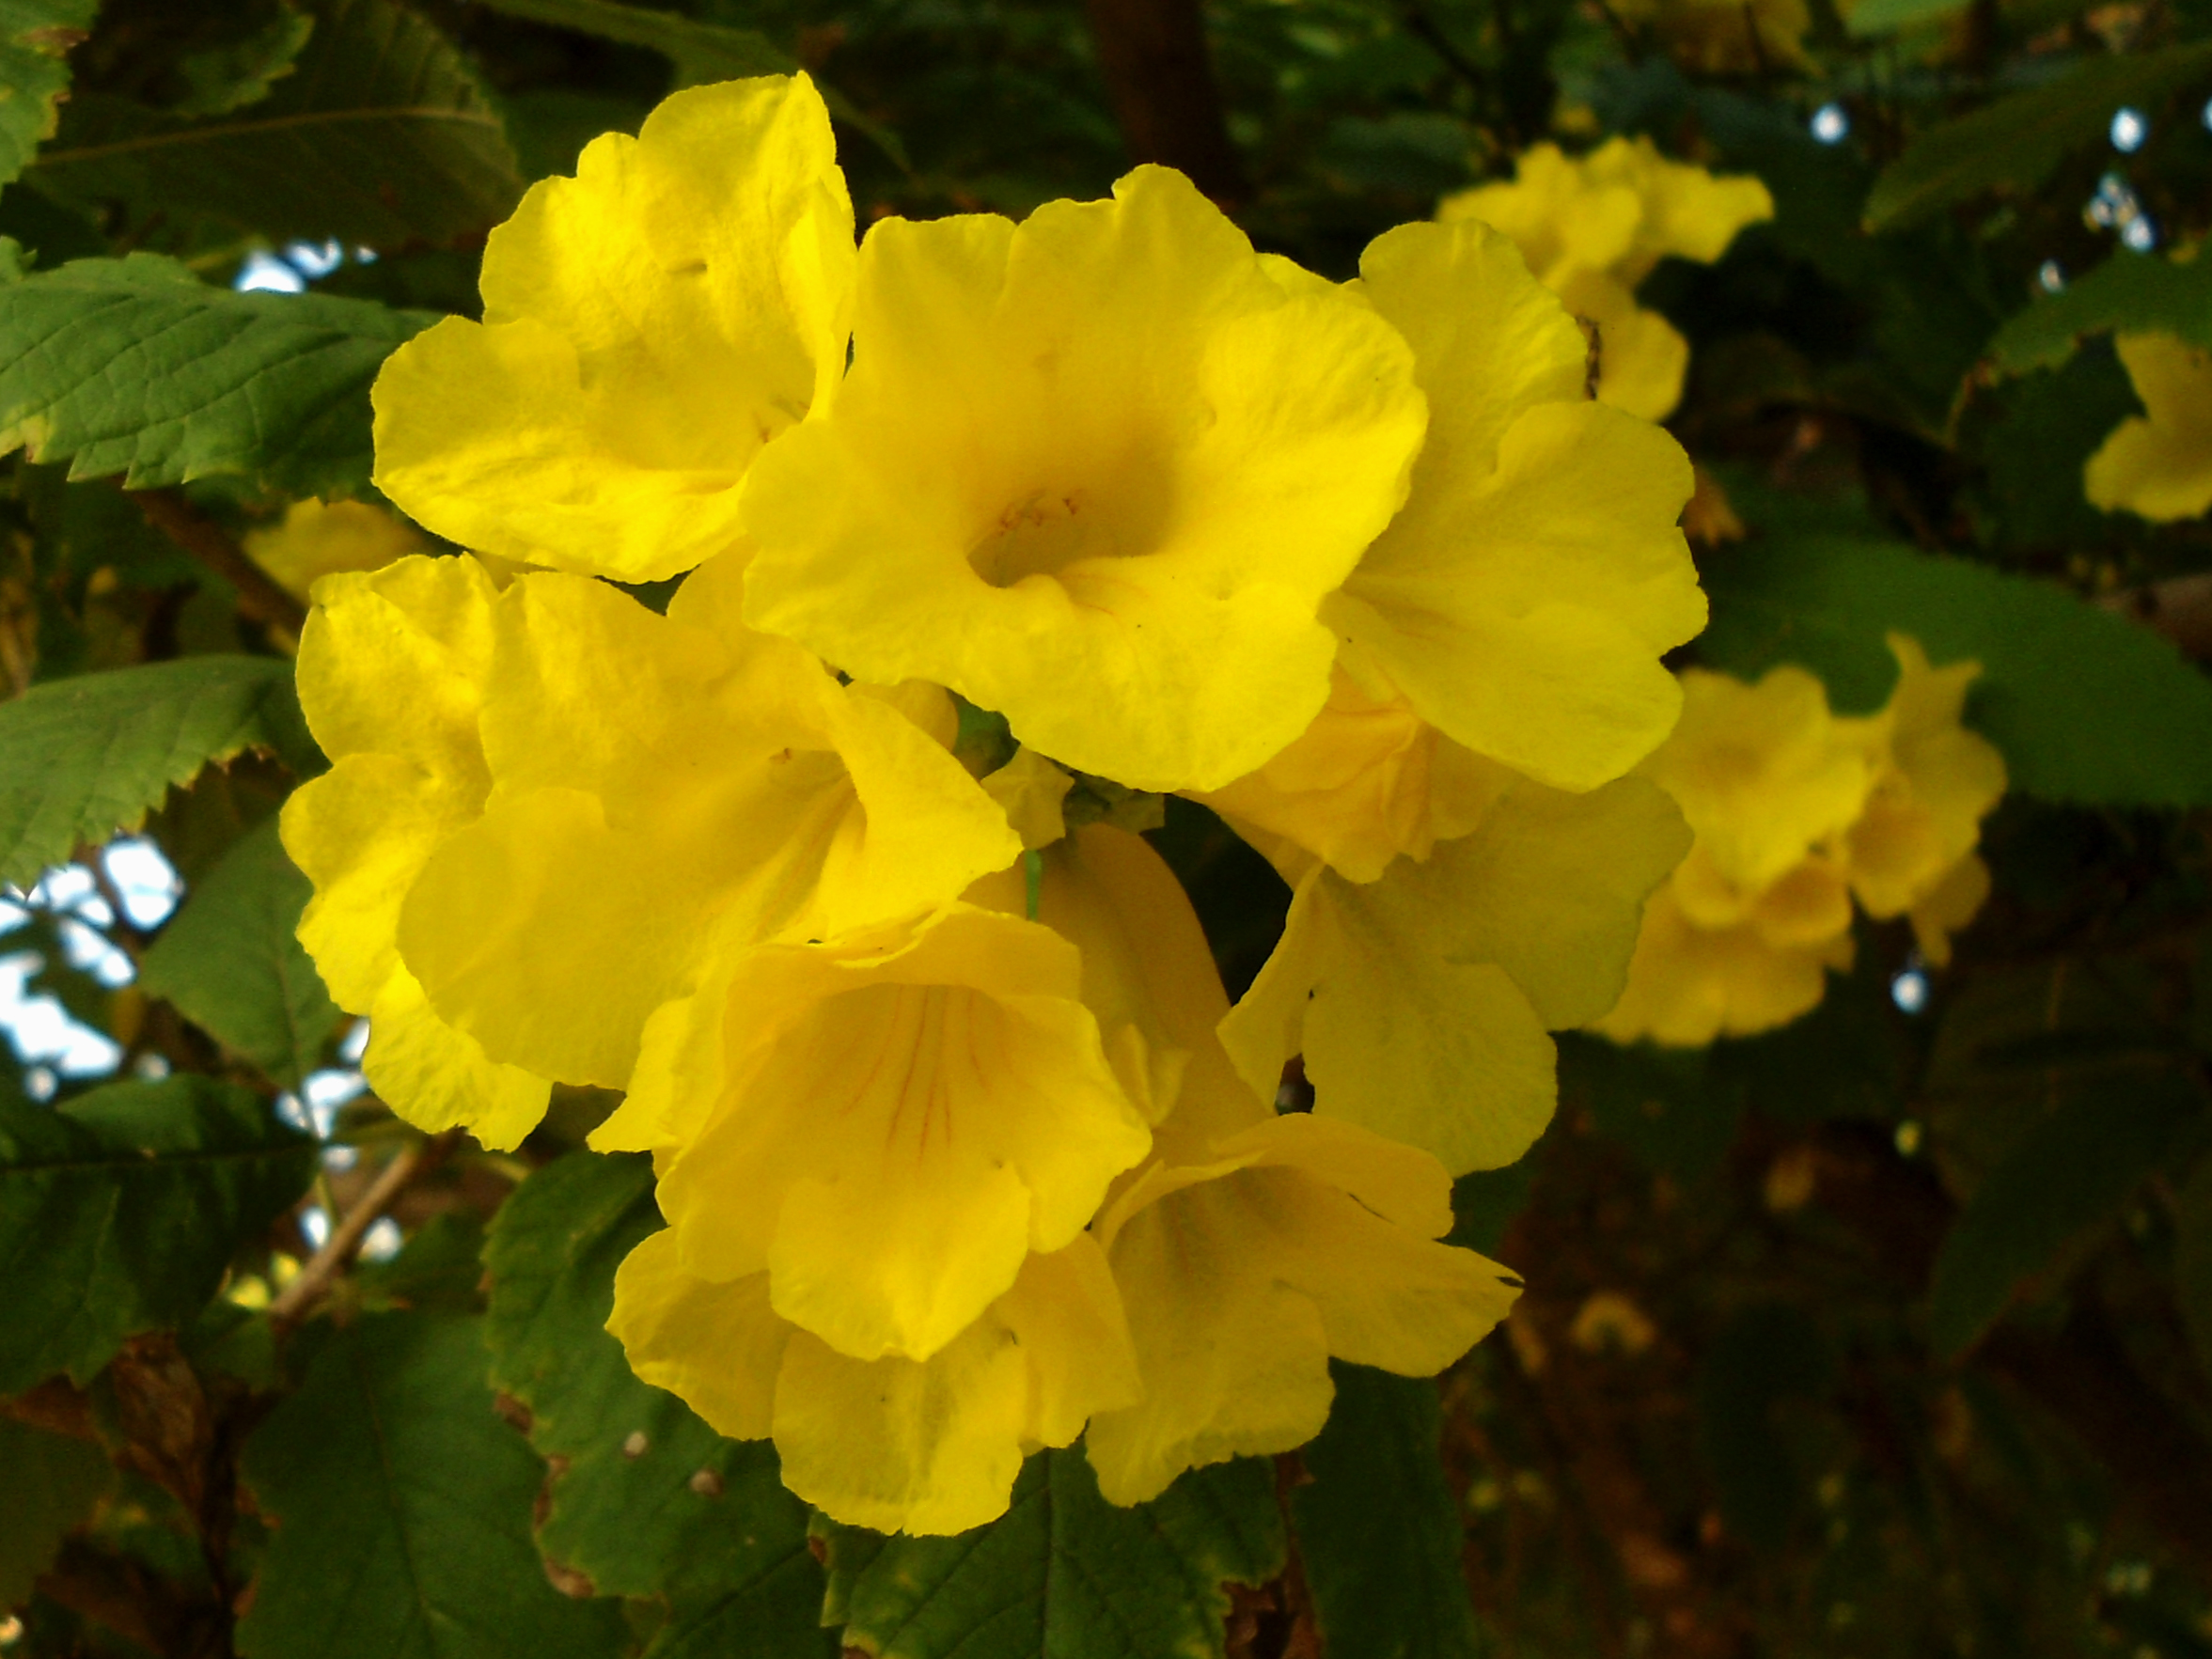 Filetecoma Stans Yellow Bell Flowers At Shilparamam Jaatara 02g